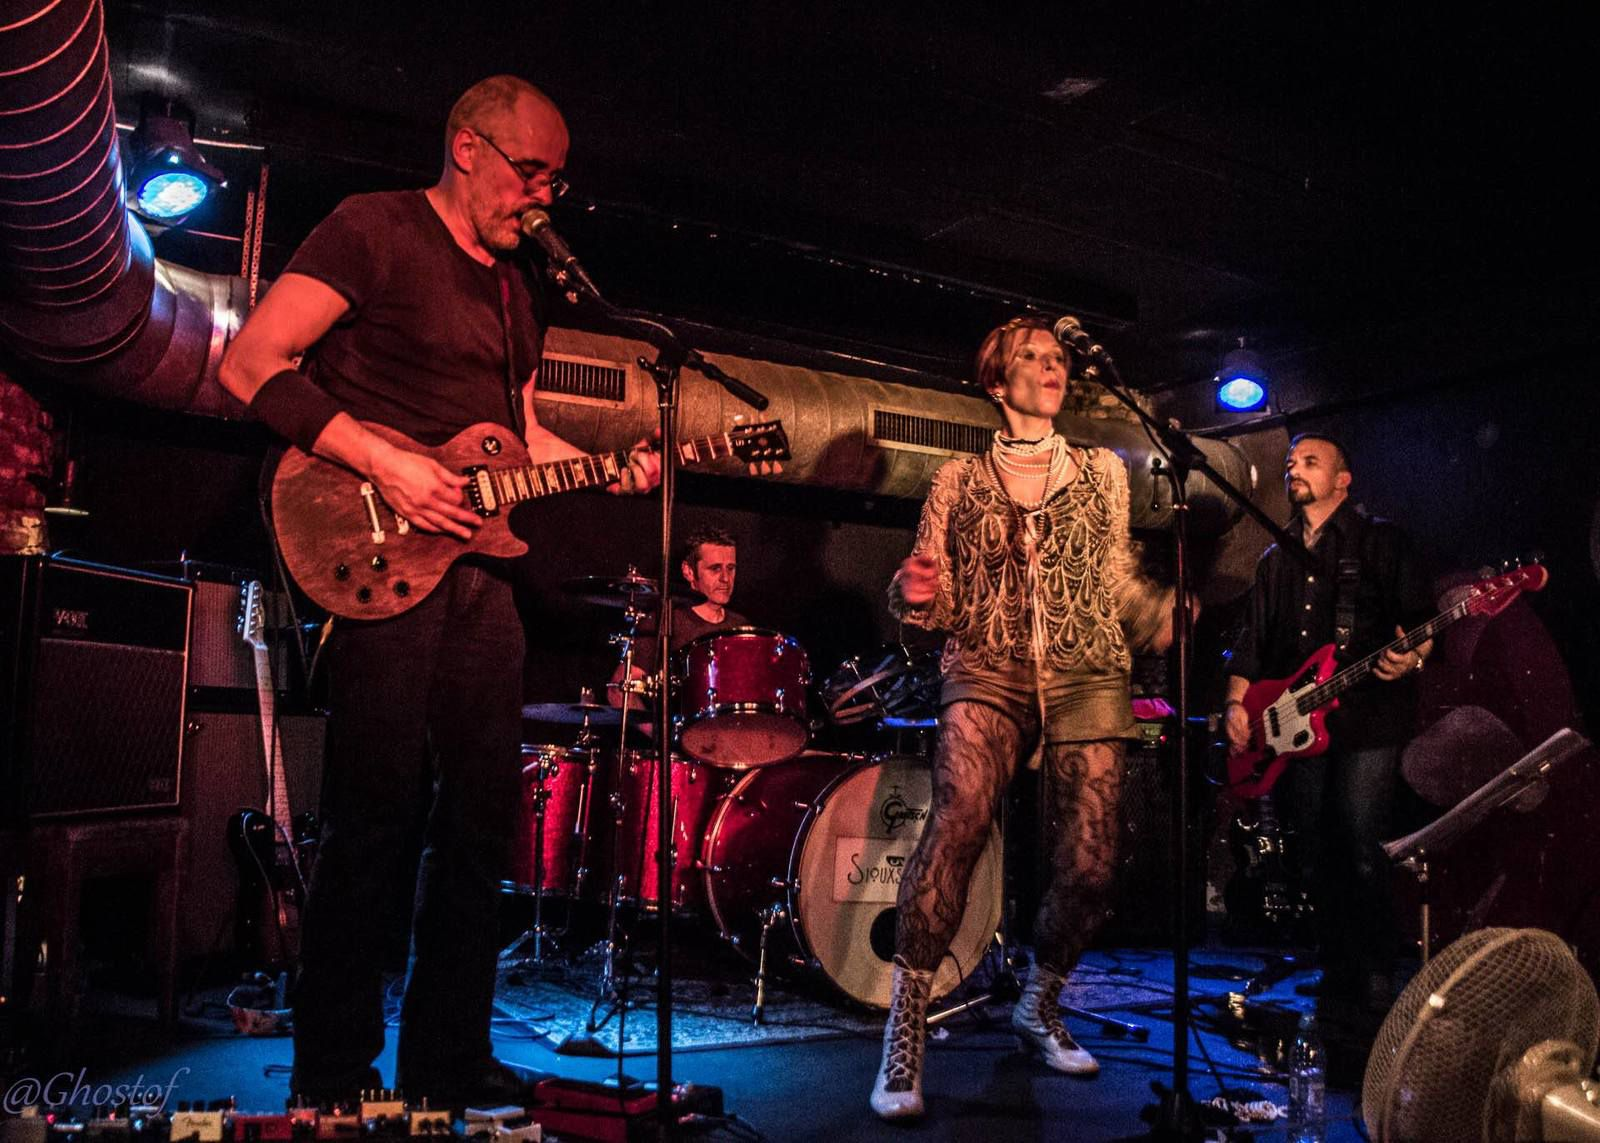 🎸 Photos - Siouxsidaires (SIOUXSIE & THE BANSHEES tribute band) @ Rock Classic - 03/06/2017